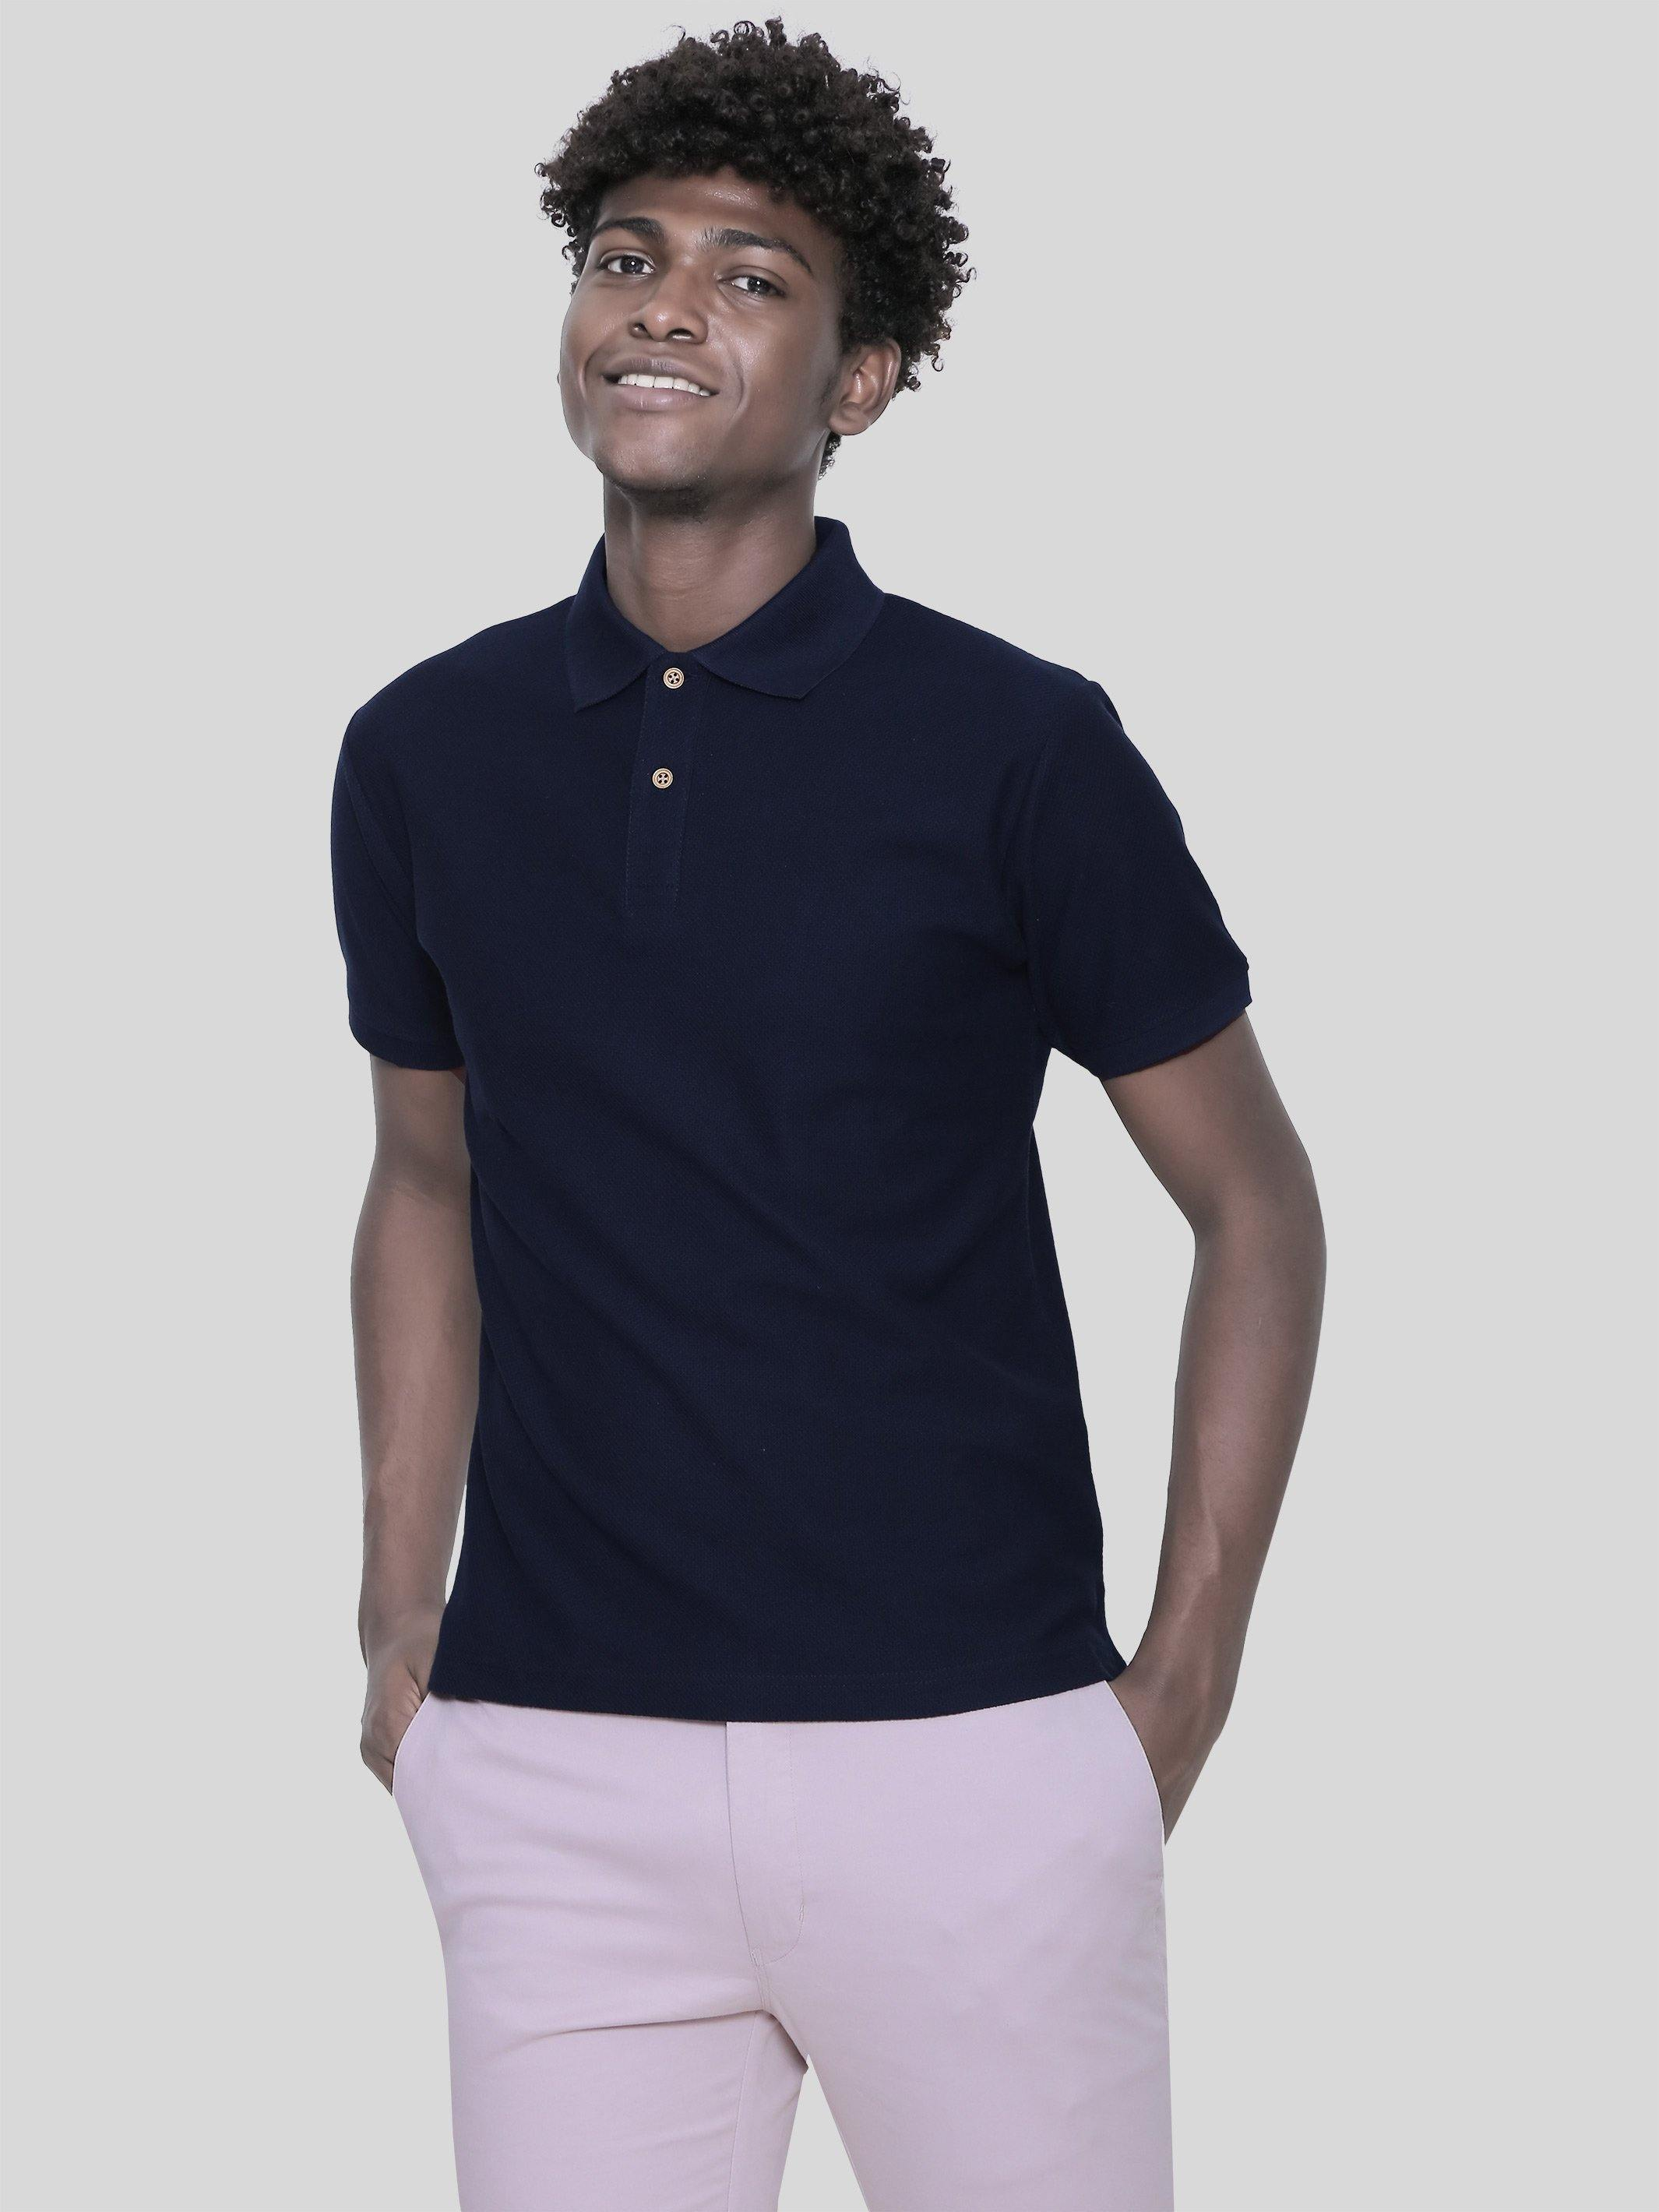 Pima Cotton Navy Blue Polo T-Shirt for Men (GBN22) - GOOSEBERY